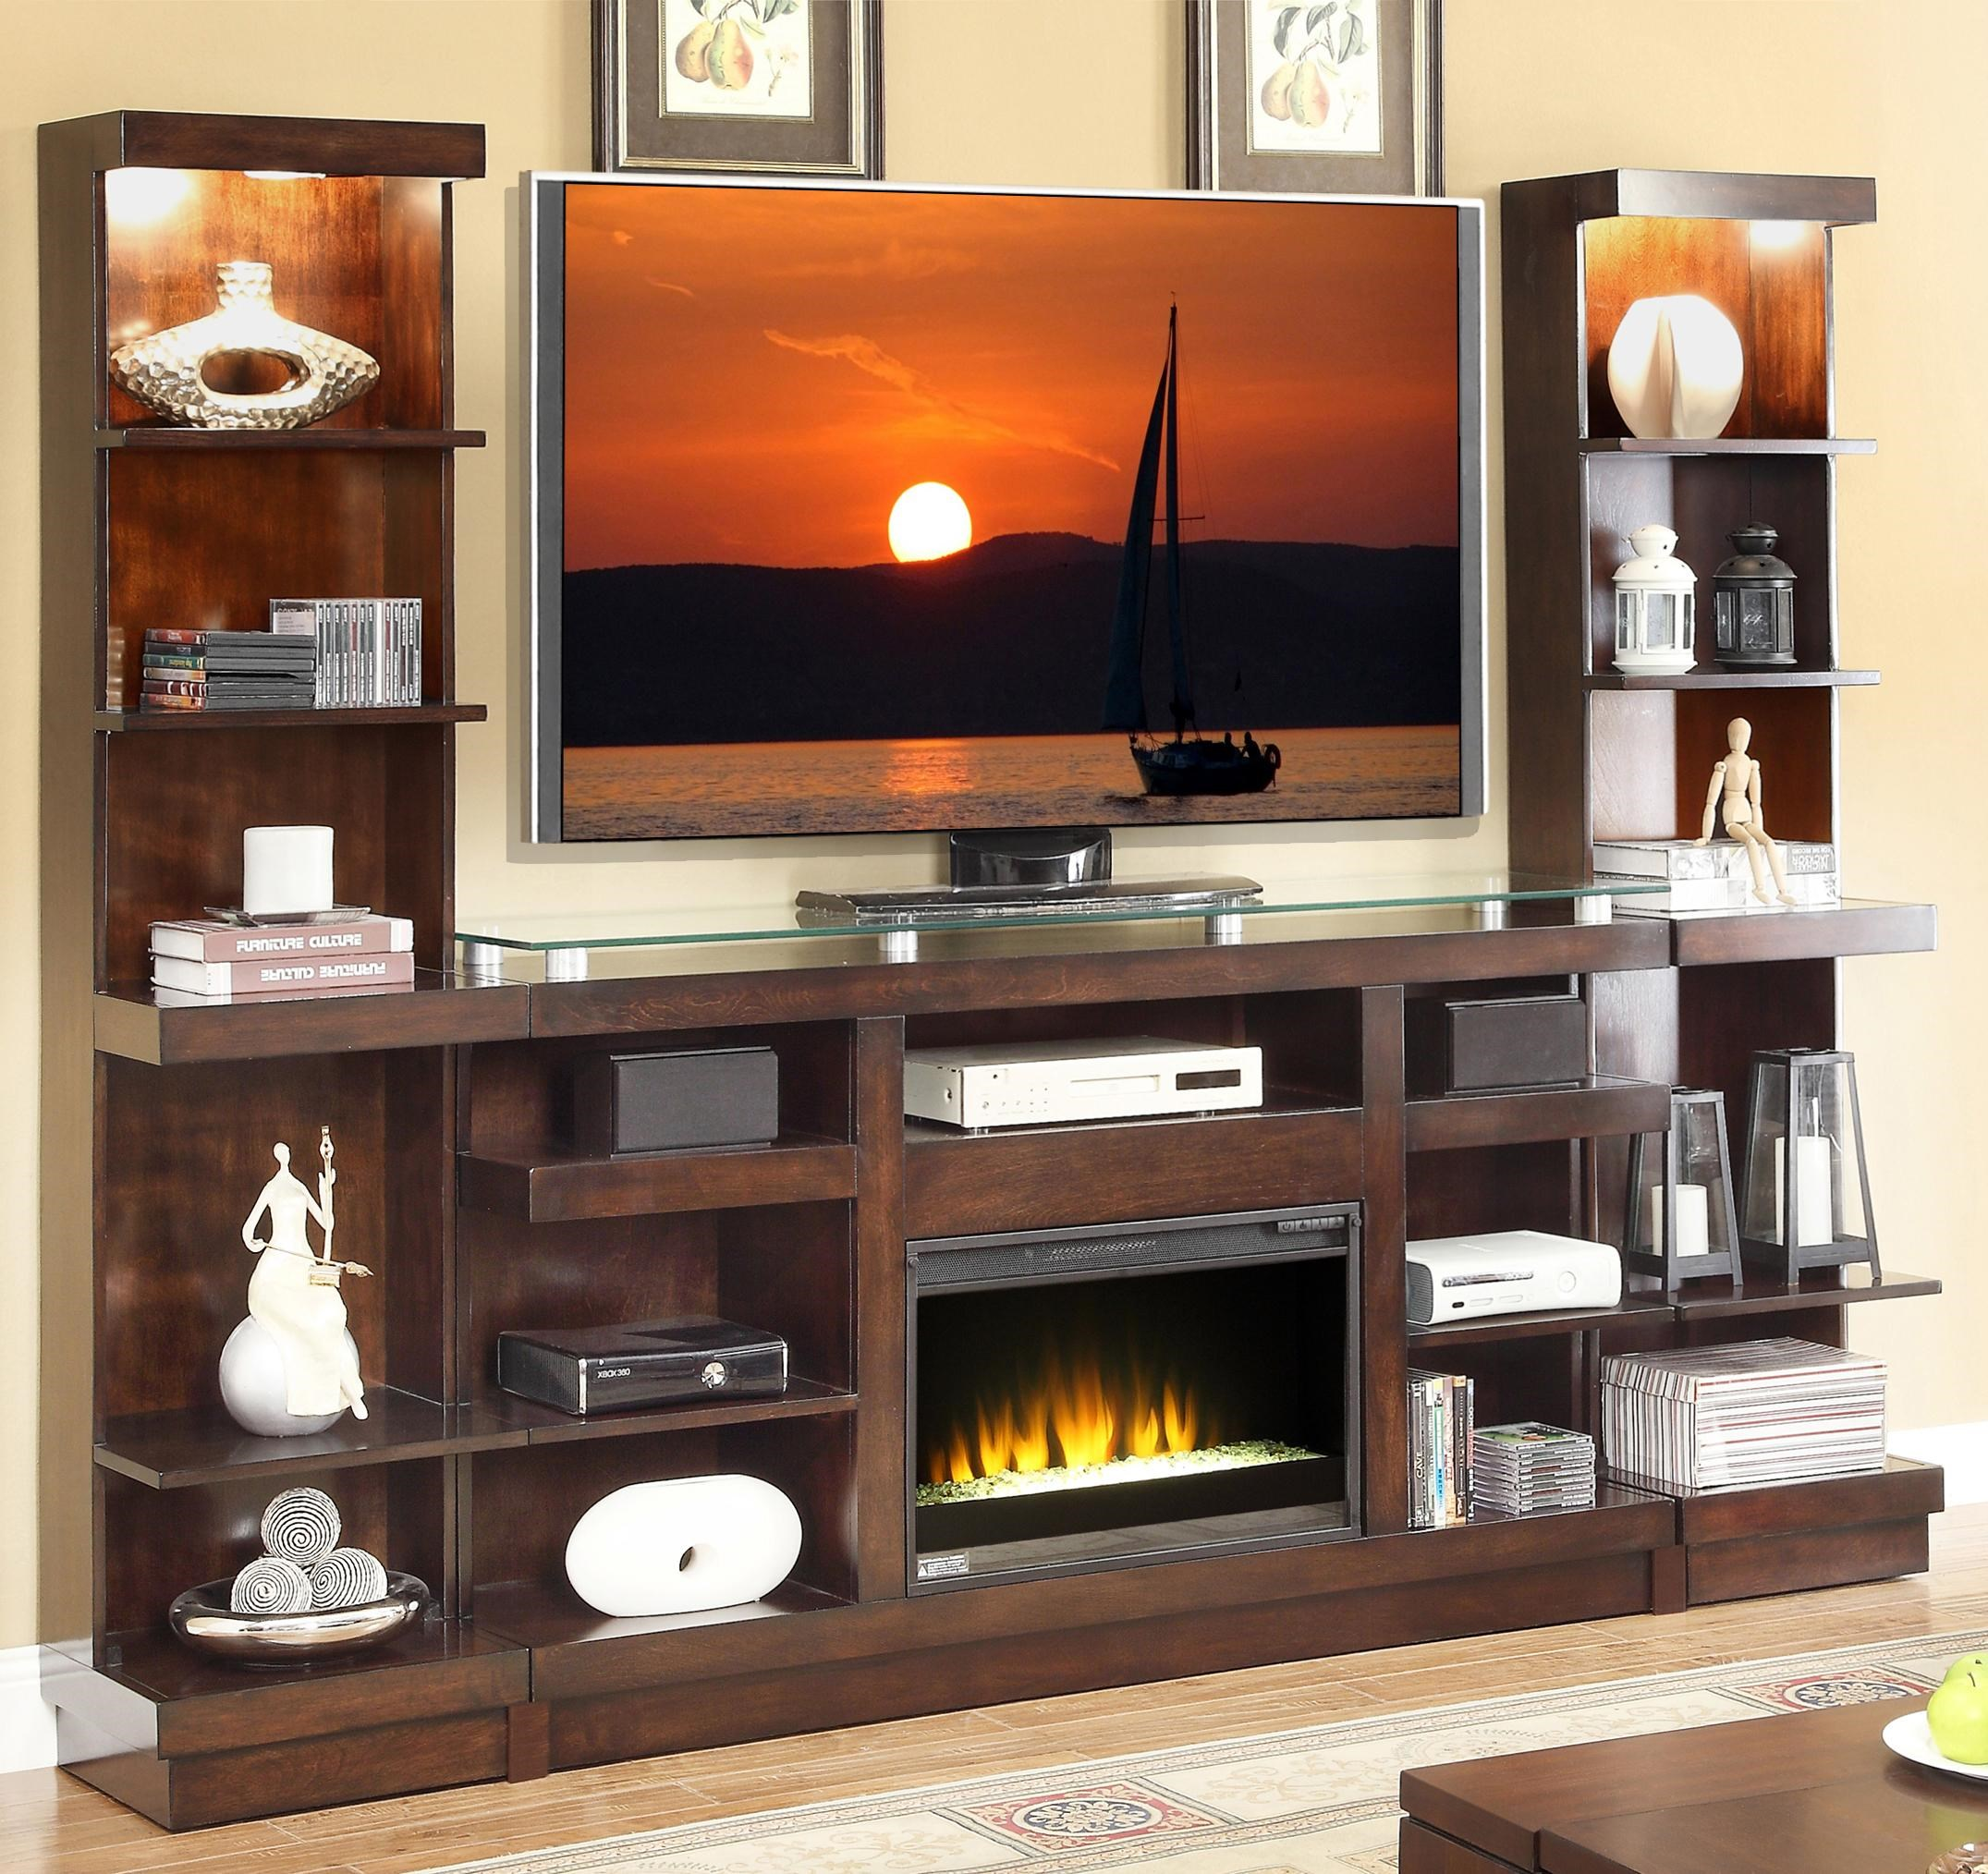 Legends Furniture Novella Entertainment Center With Fireplace And Bookcase  Piers   Darvin Furniture   Wall Unit  Entertainment Centers With Fireplaces